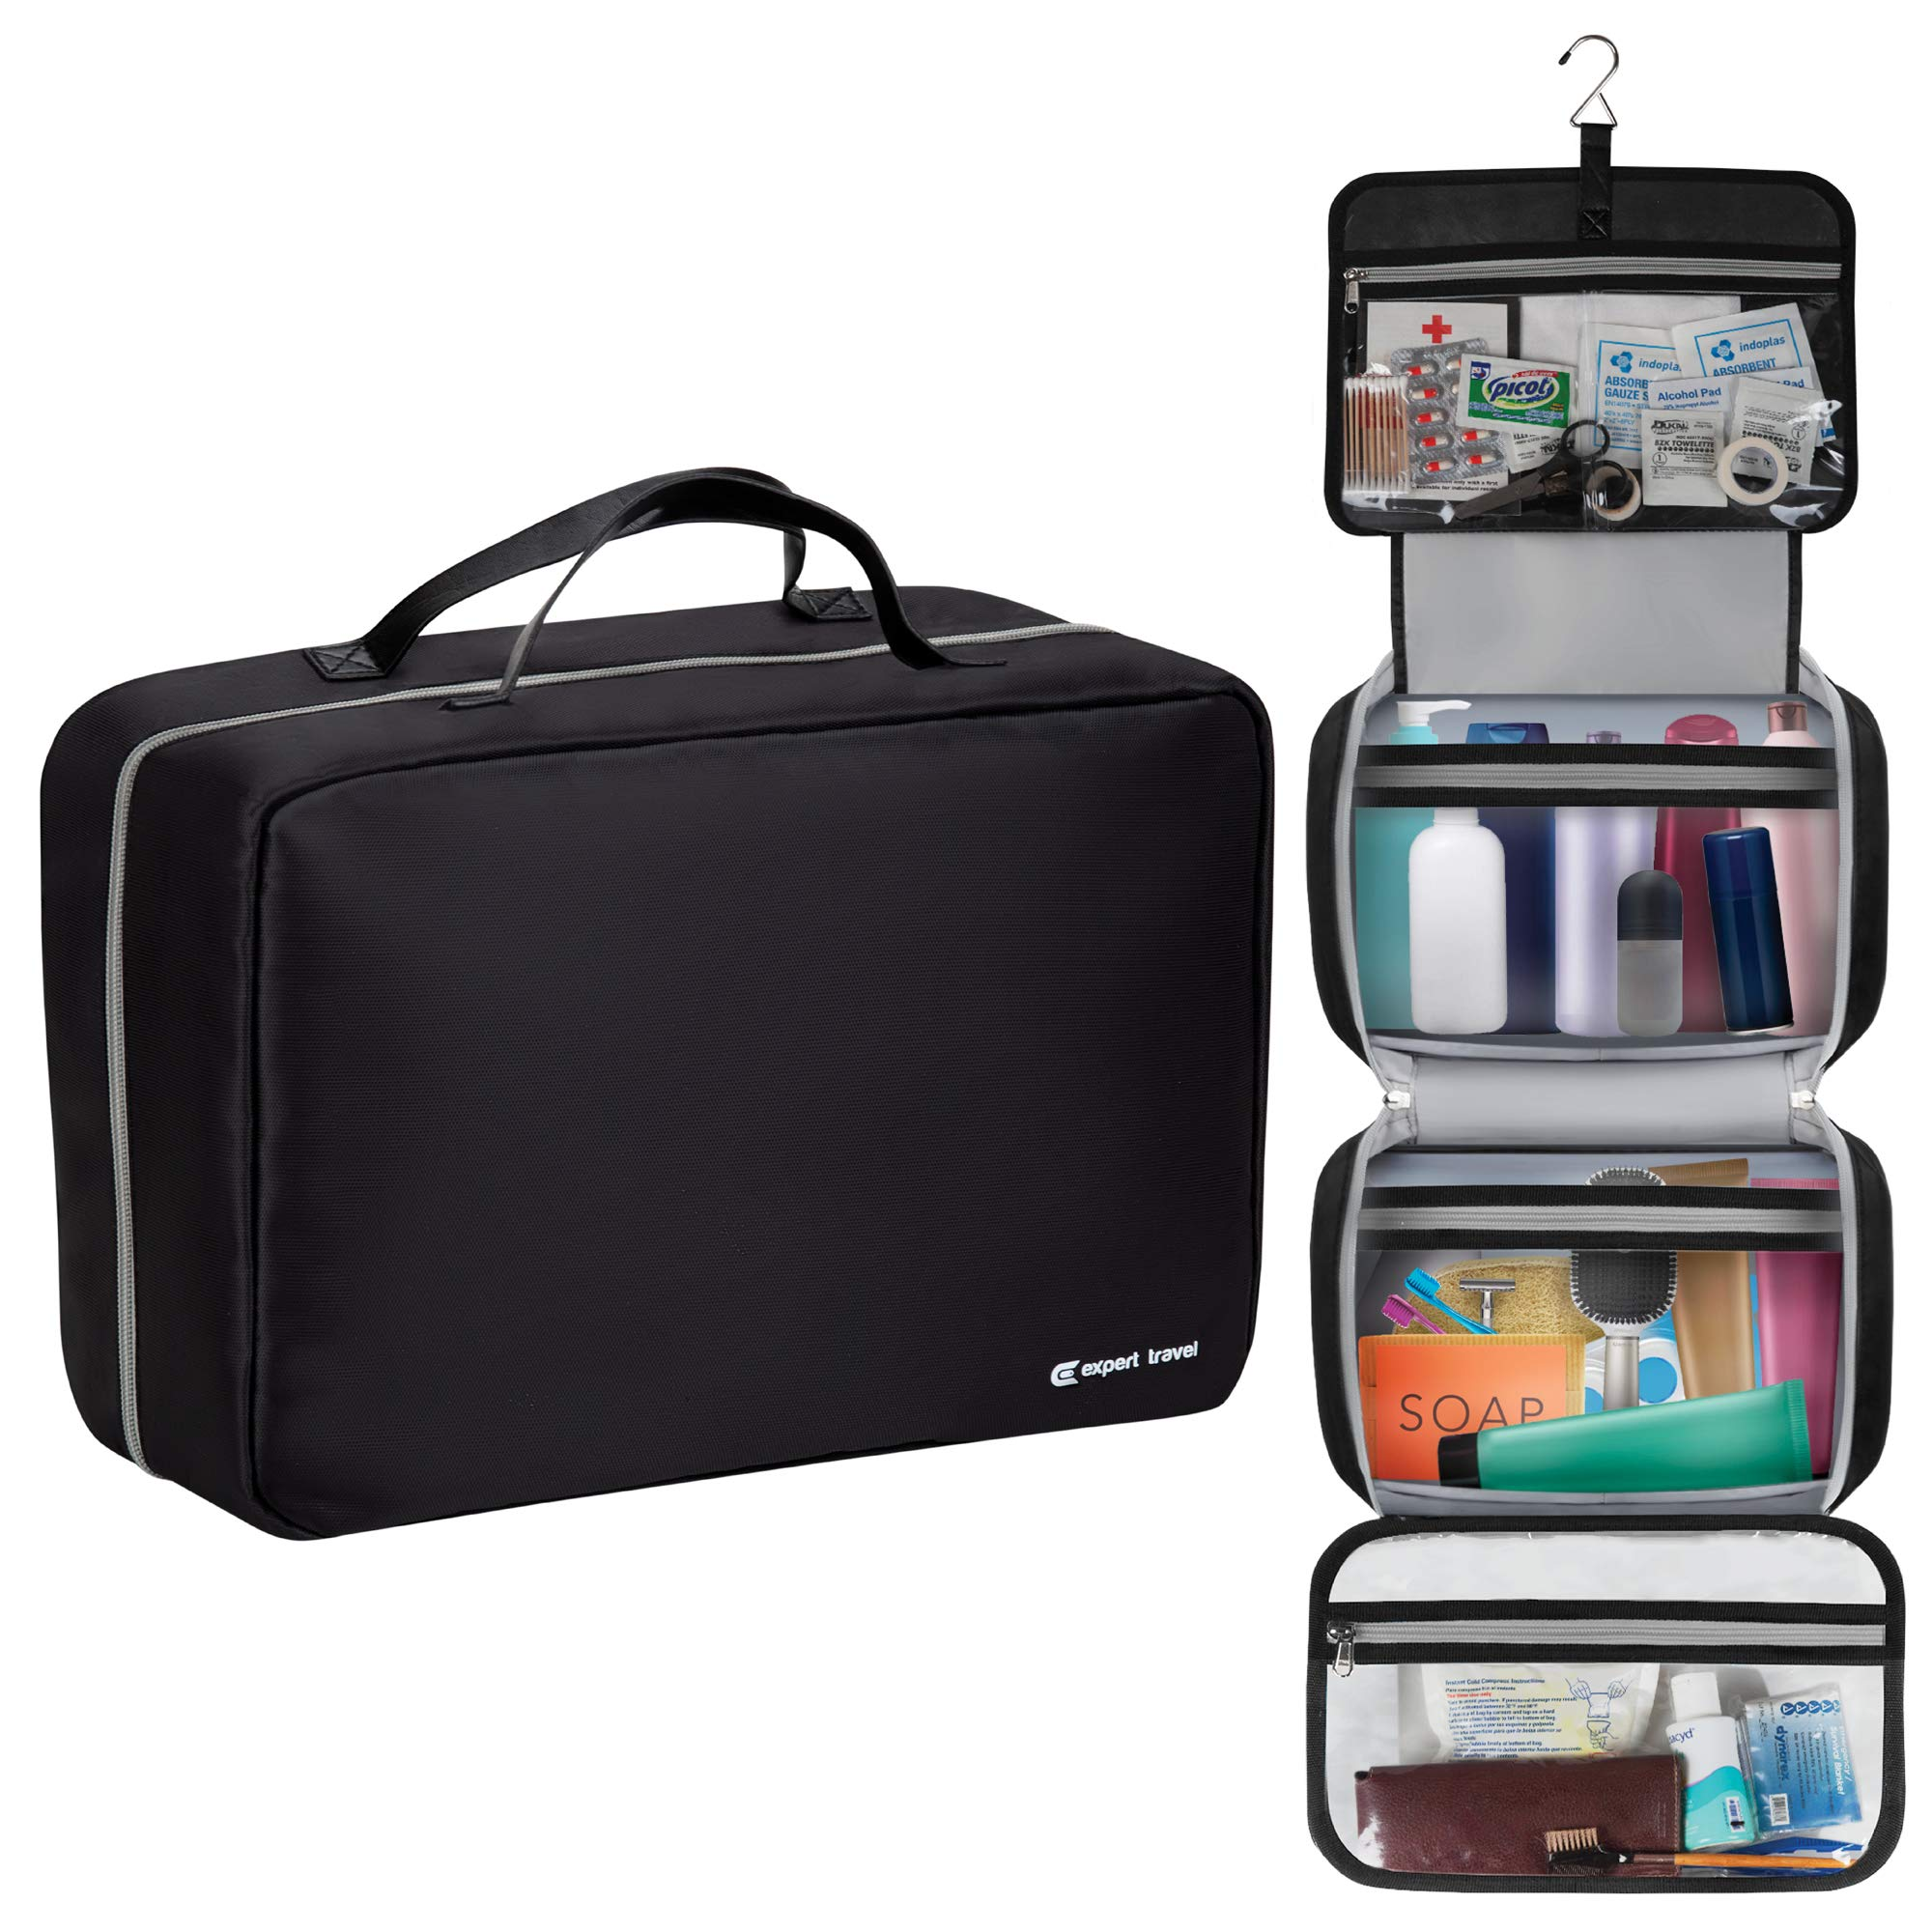 The Biggest F'n Toiletry Bag On Amazon (42''x14'')   For Men and Women   Leak Proof   Clear Pockets   Detachable Compartment   Makeup Bag   Cosmetic Bag   Black by Expert Travel